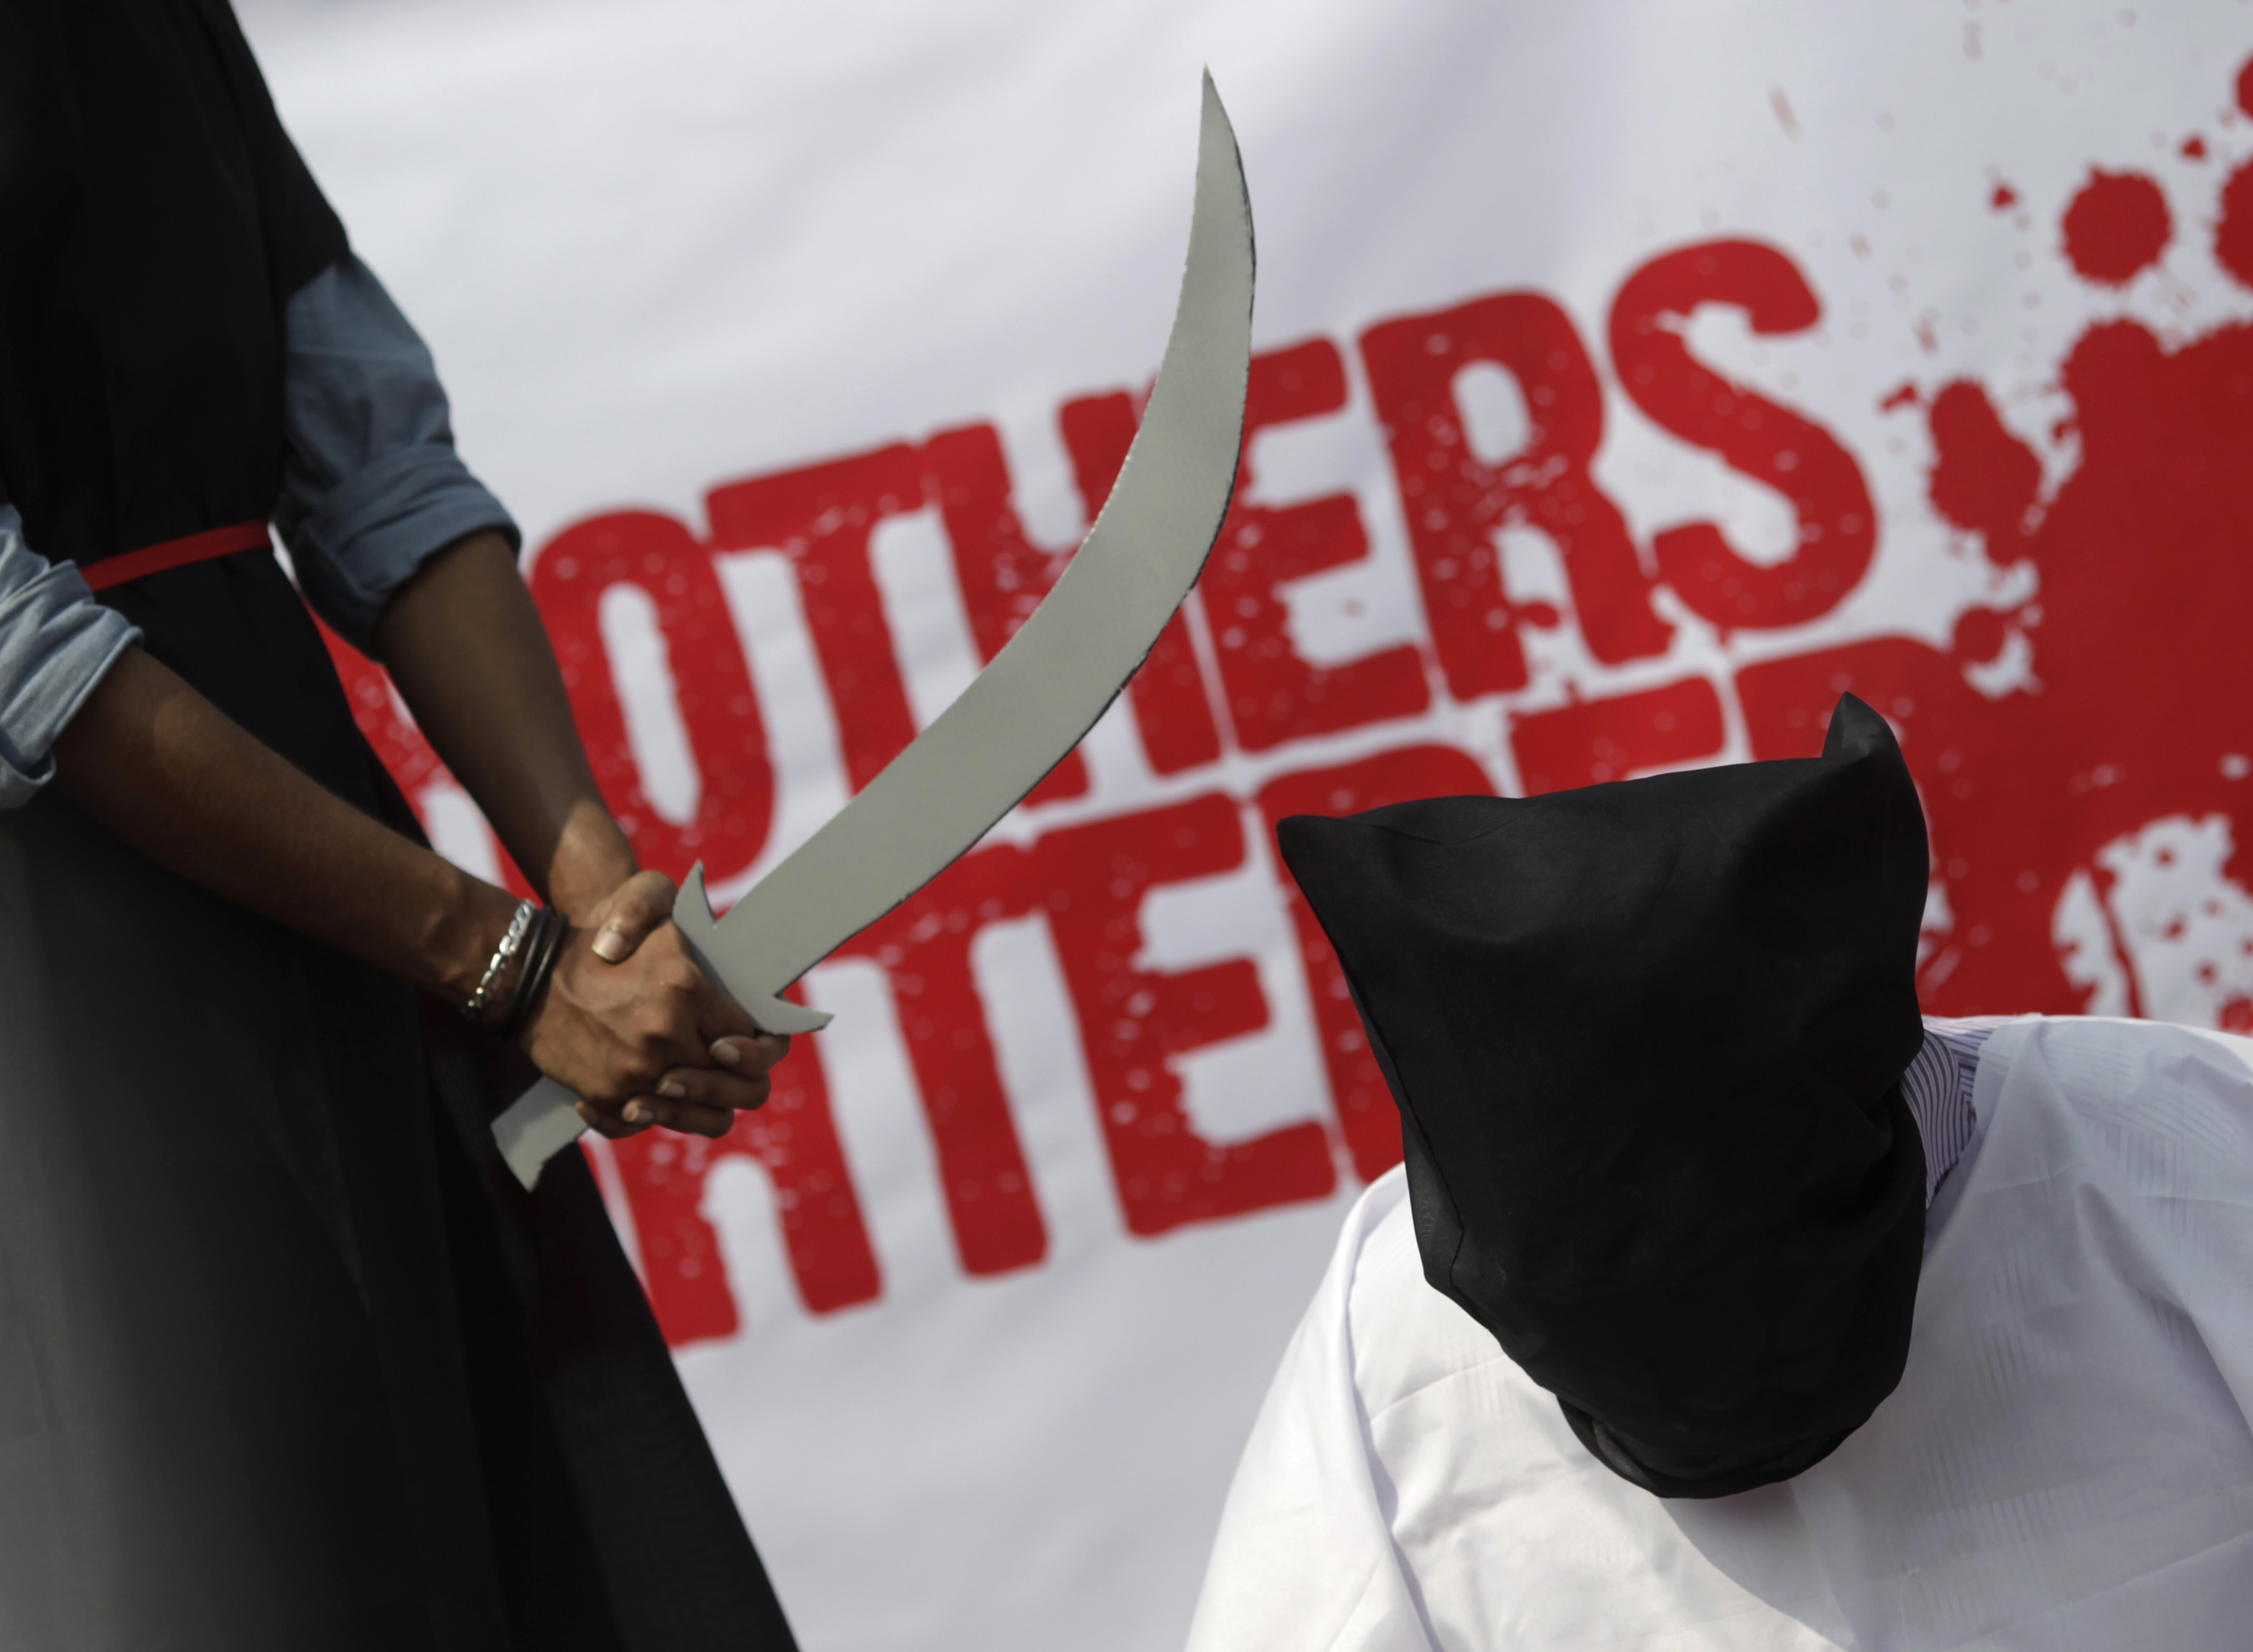 A mock execution scene in protest of Saudi Arabia beheadings in Dhaka, Bangladesh, on Oct 15, 2011